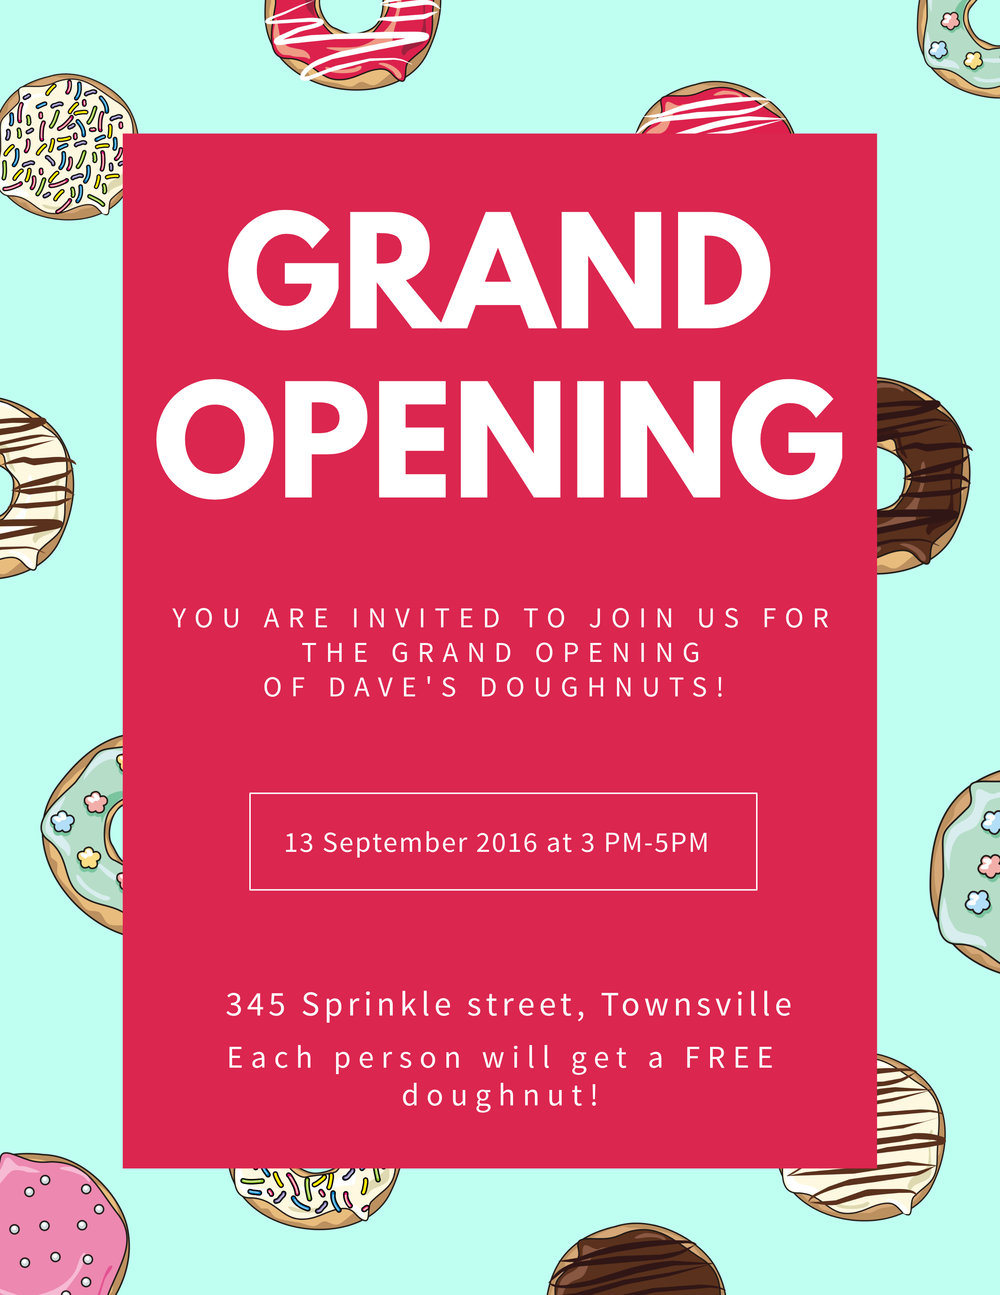 Copy of Sweets Shop Grand Opening Flyer Template.jpg